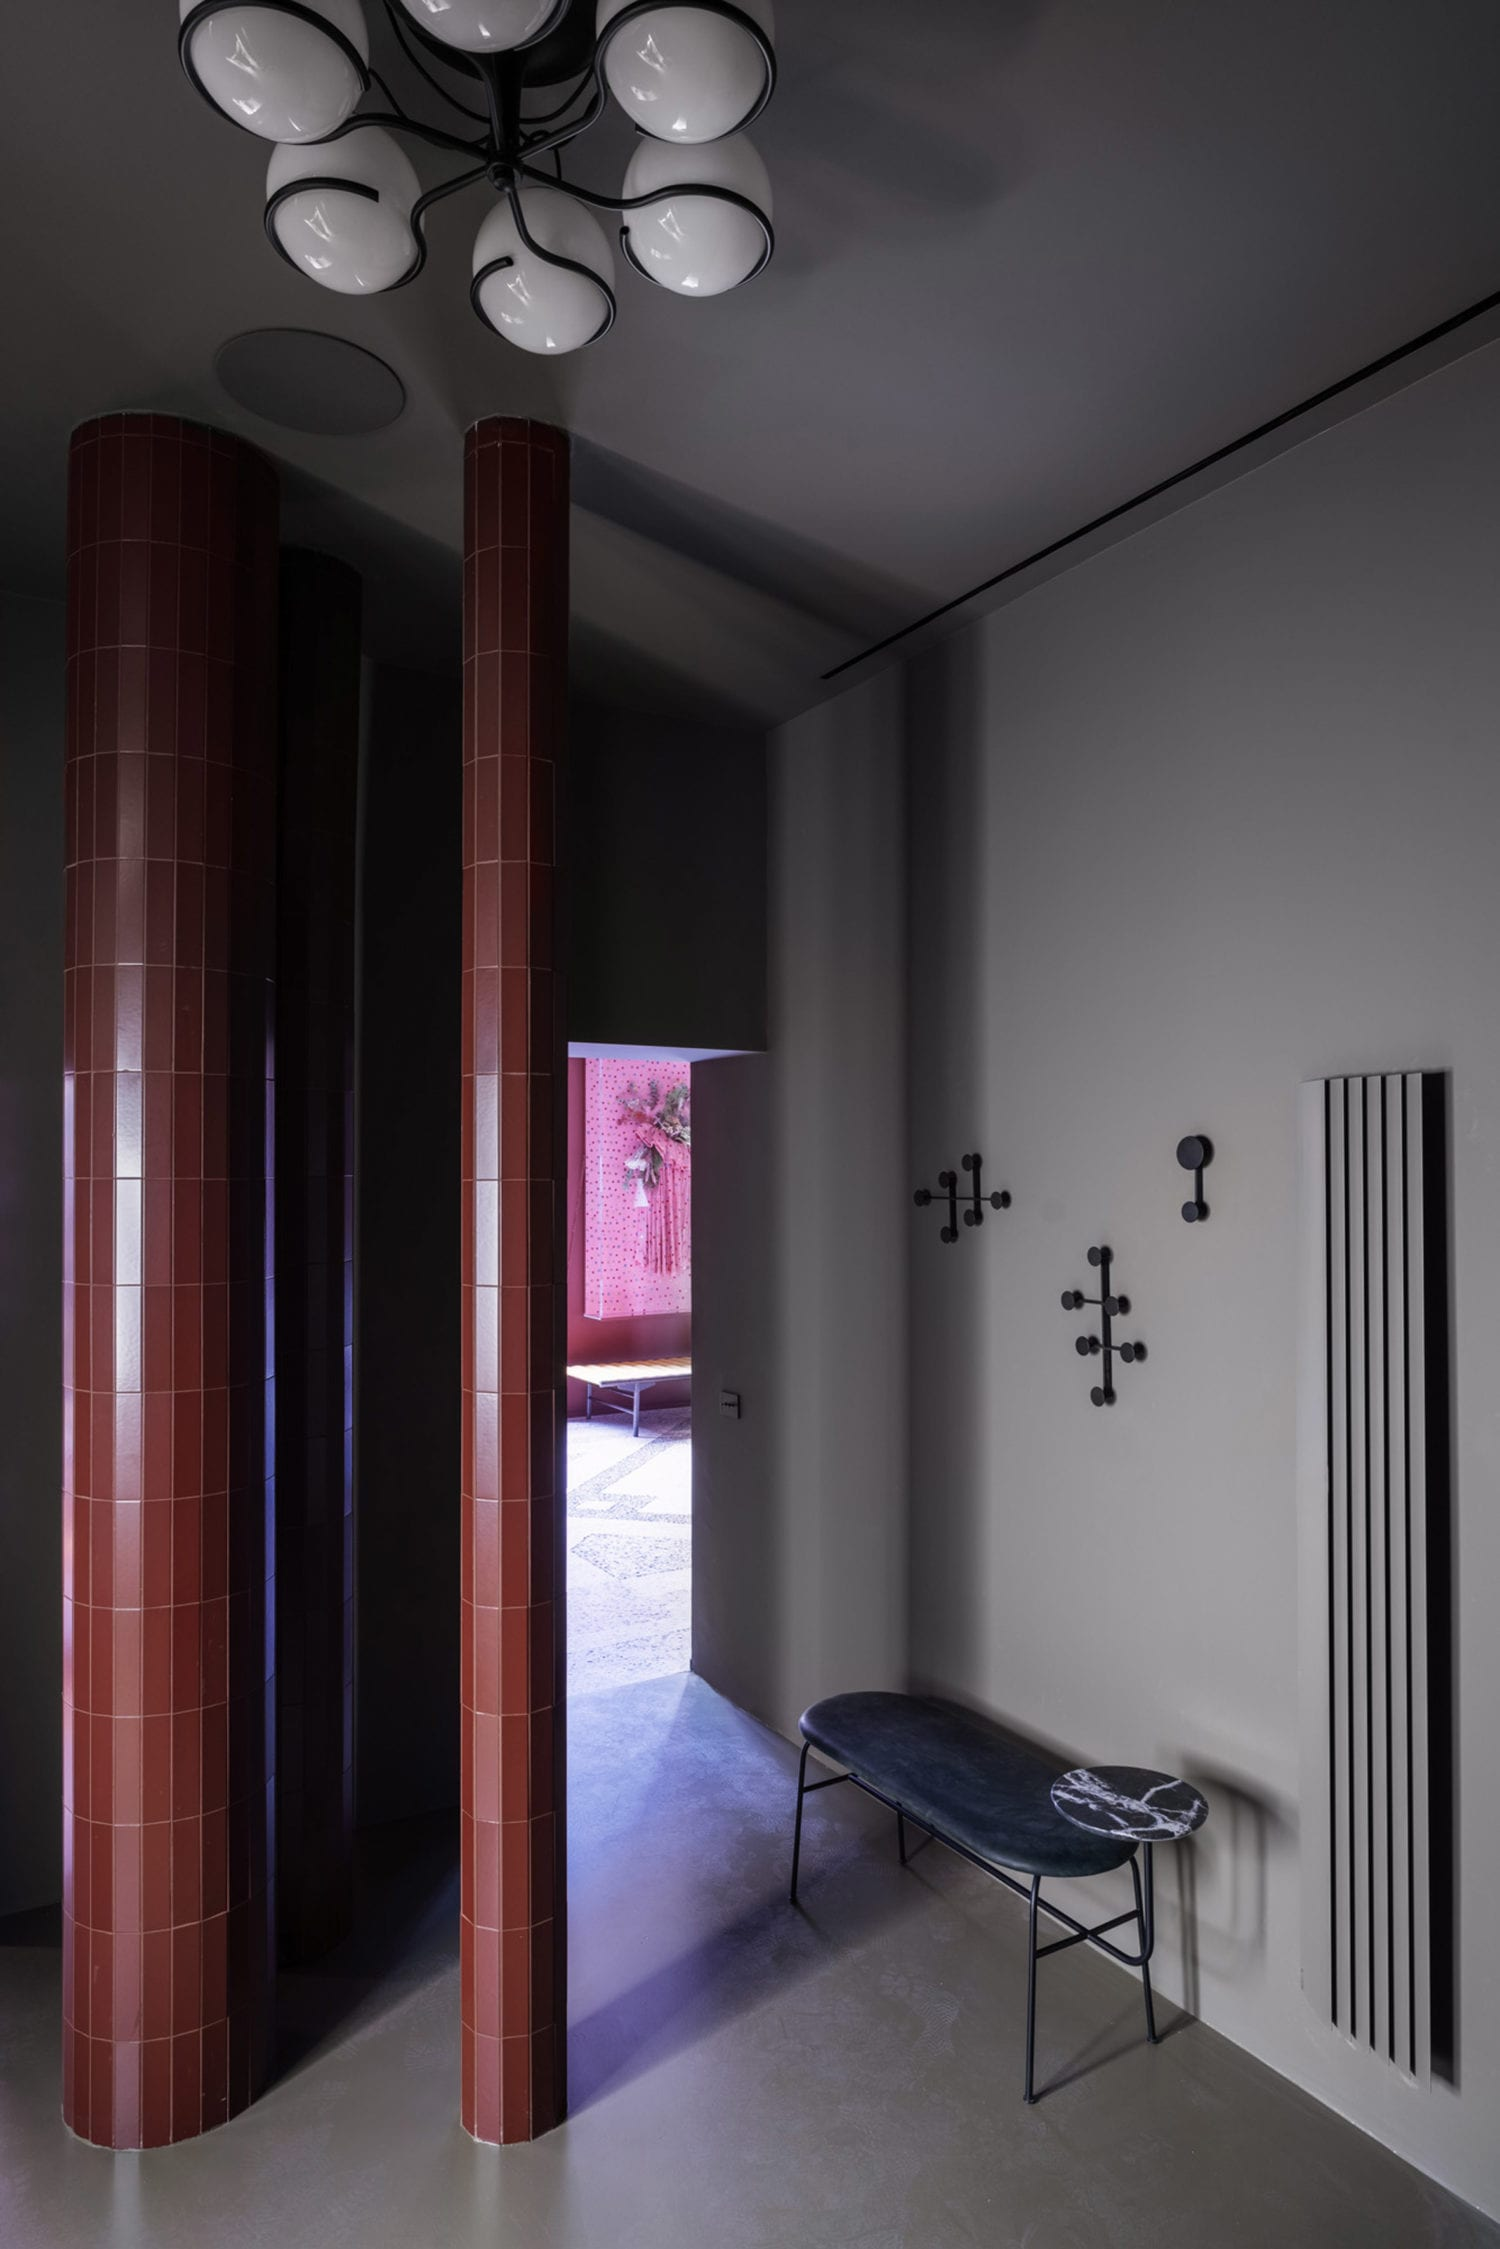 Perfect Darkness Apartment Installation By Elisa Ossino And Josephine Akvama Hoffmeyer Milan Design Week 2019 Yellowtrace 02